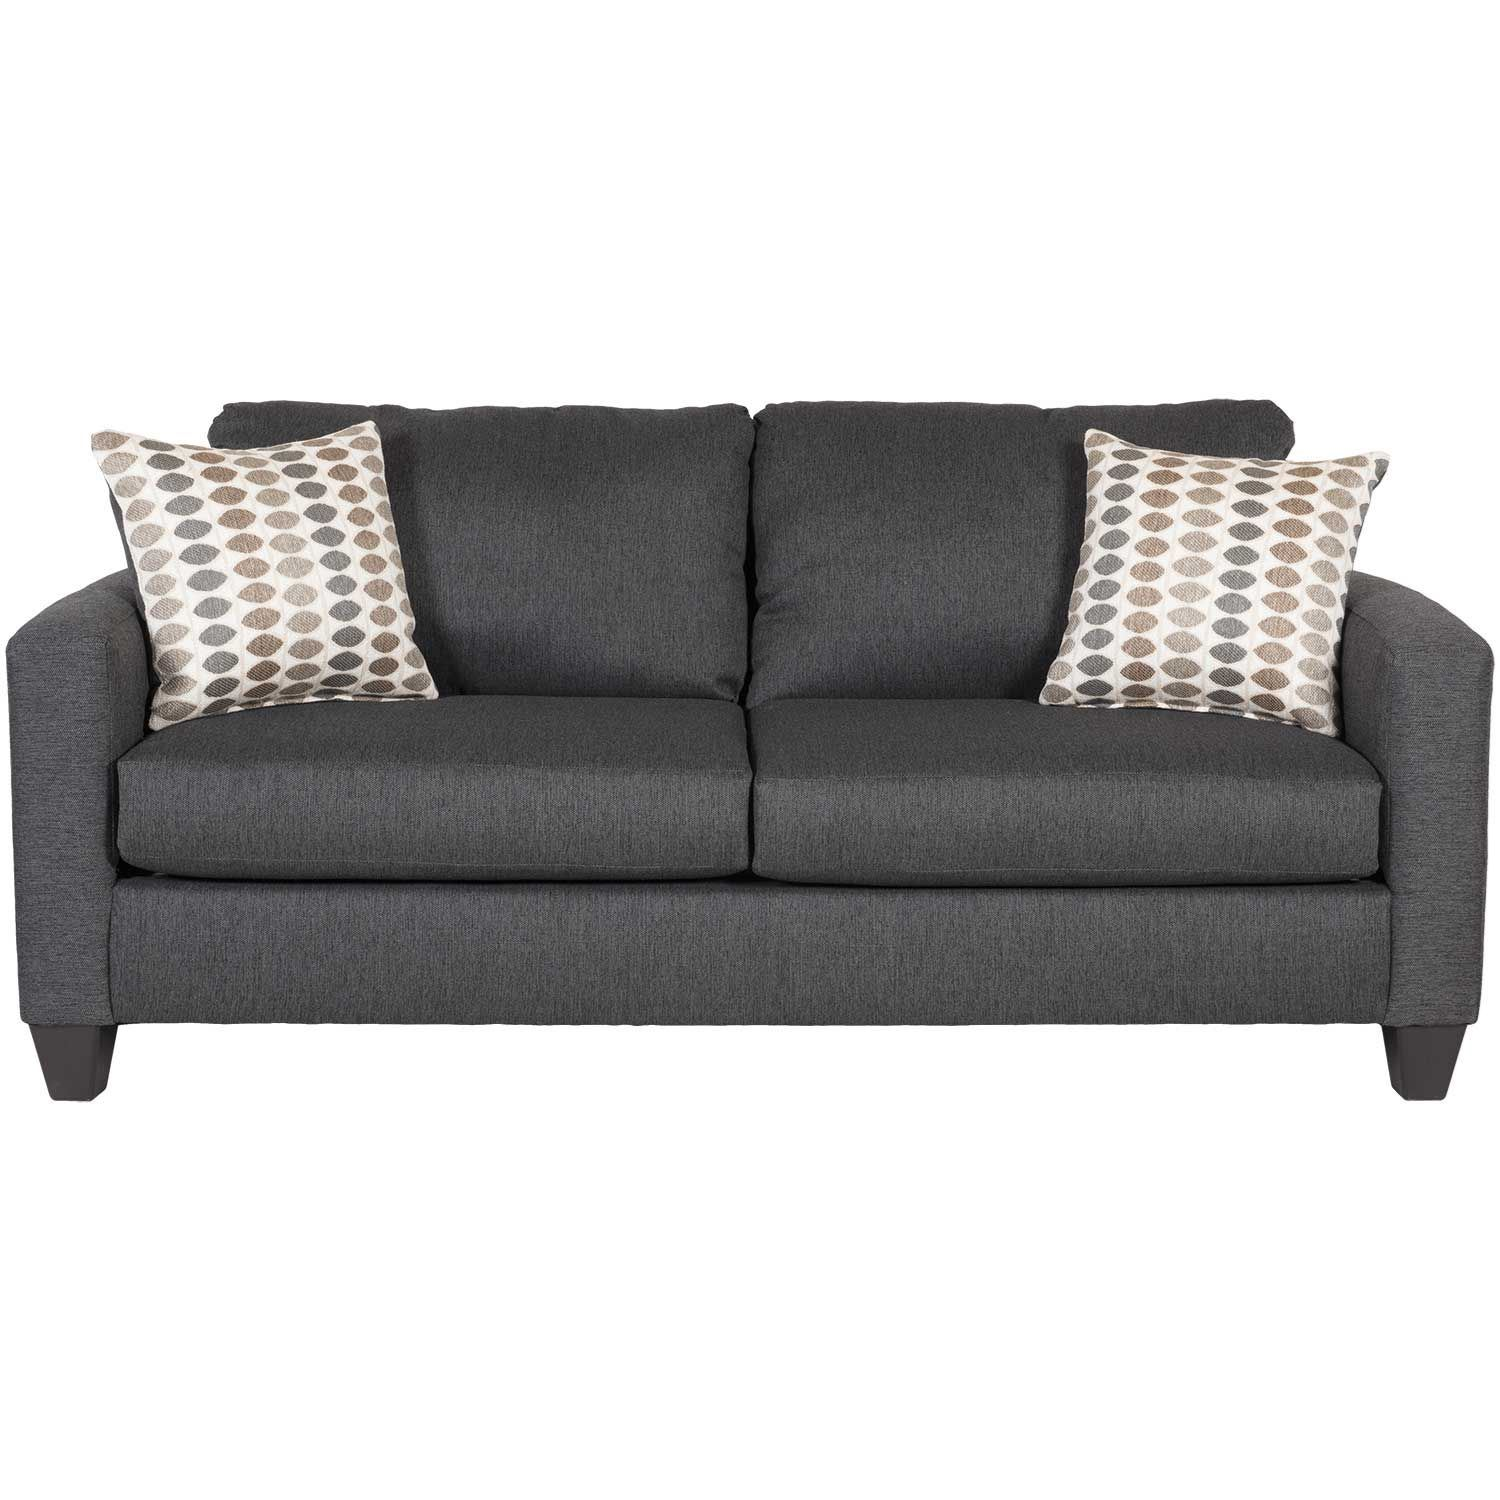 ... Picture Of Piper Carbon Full Sleeper Sofa ...